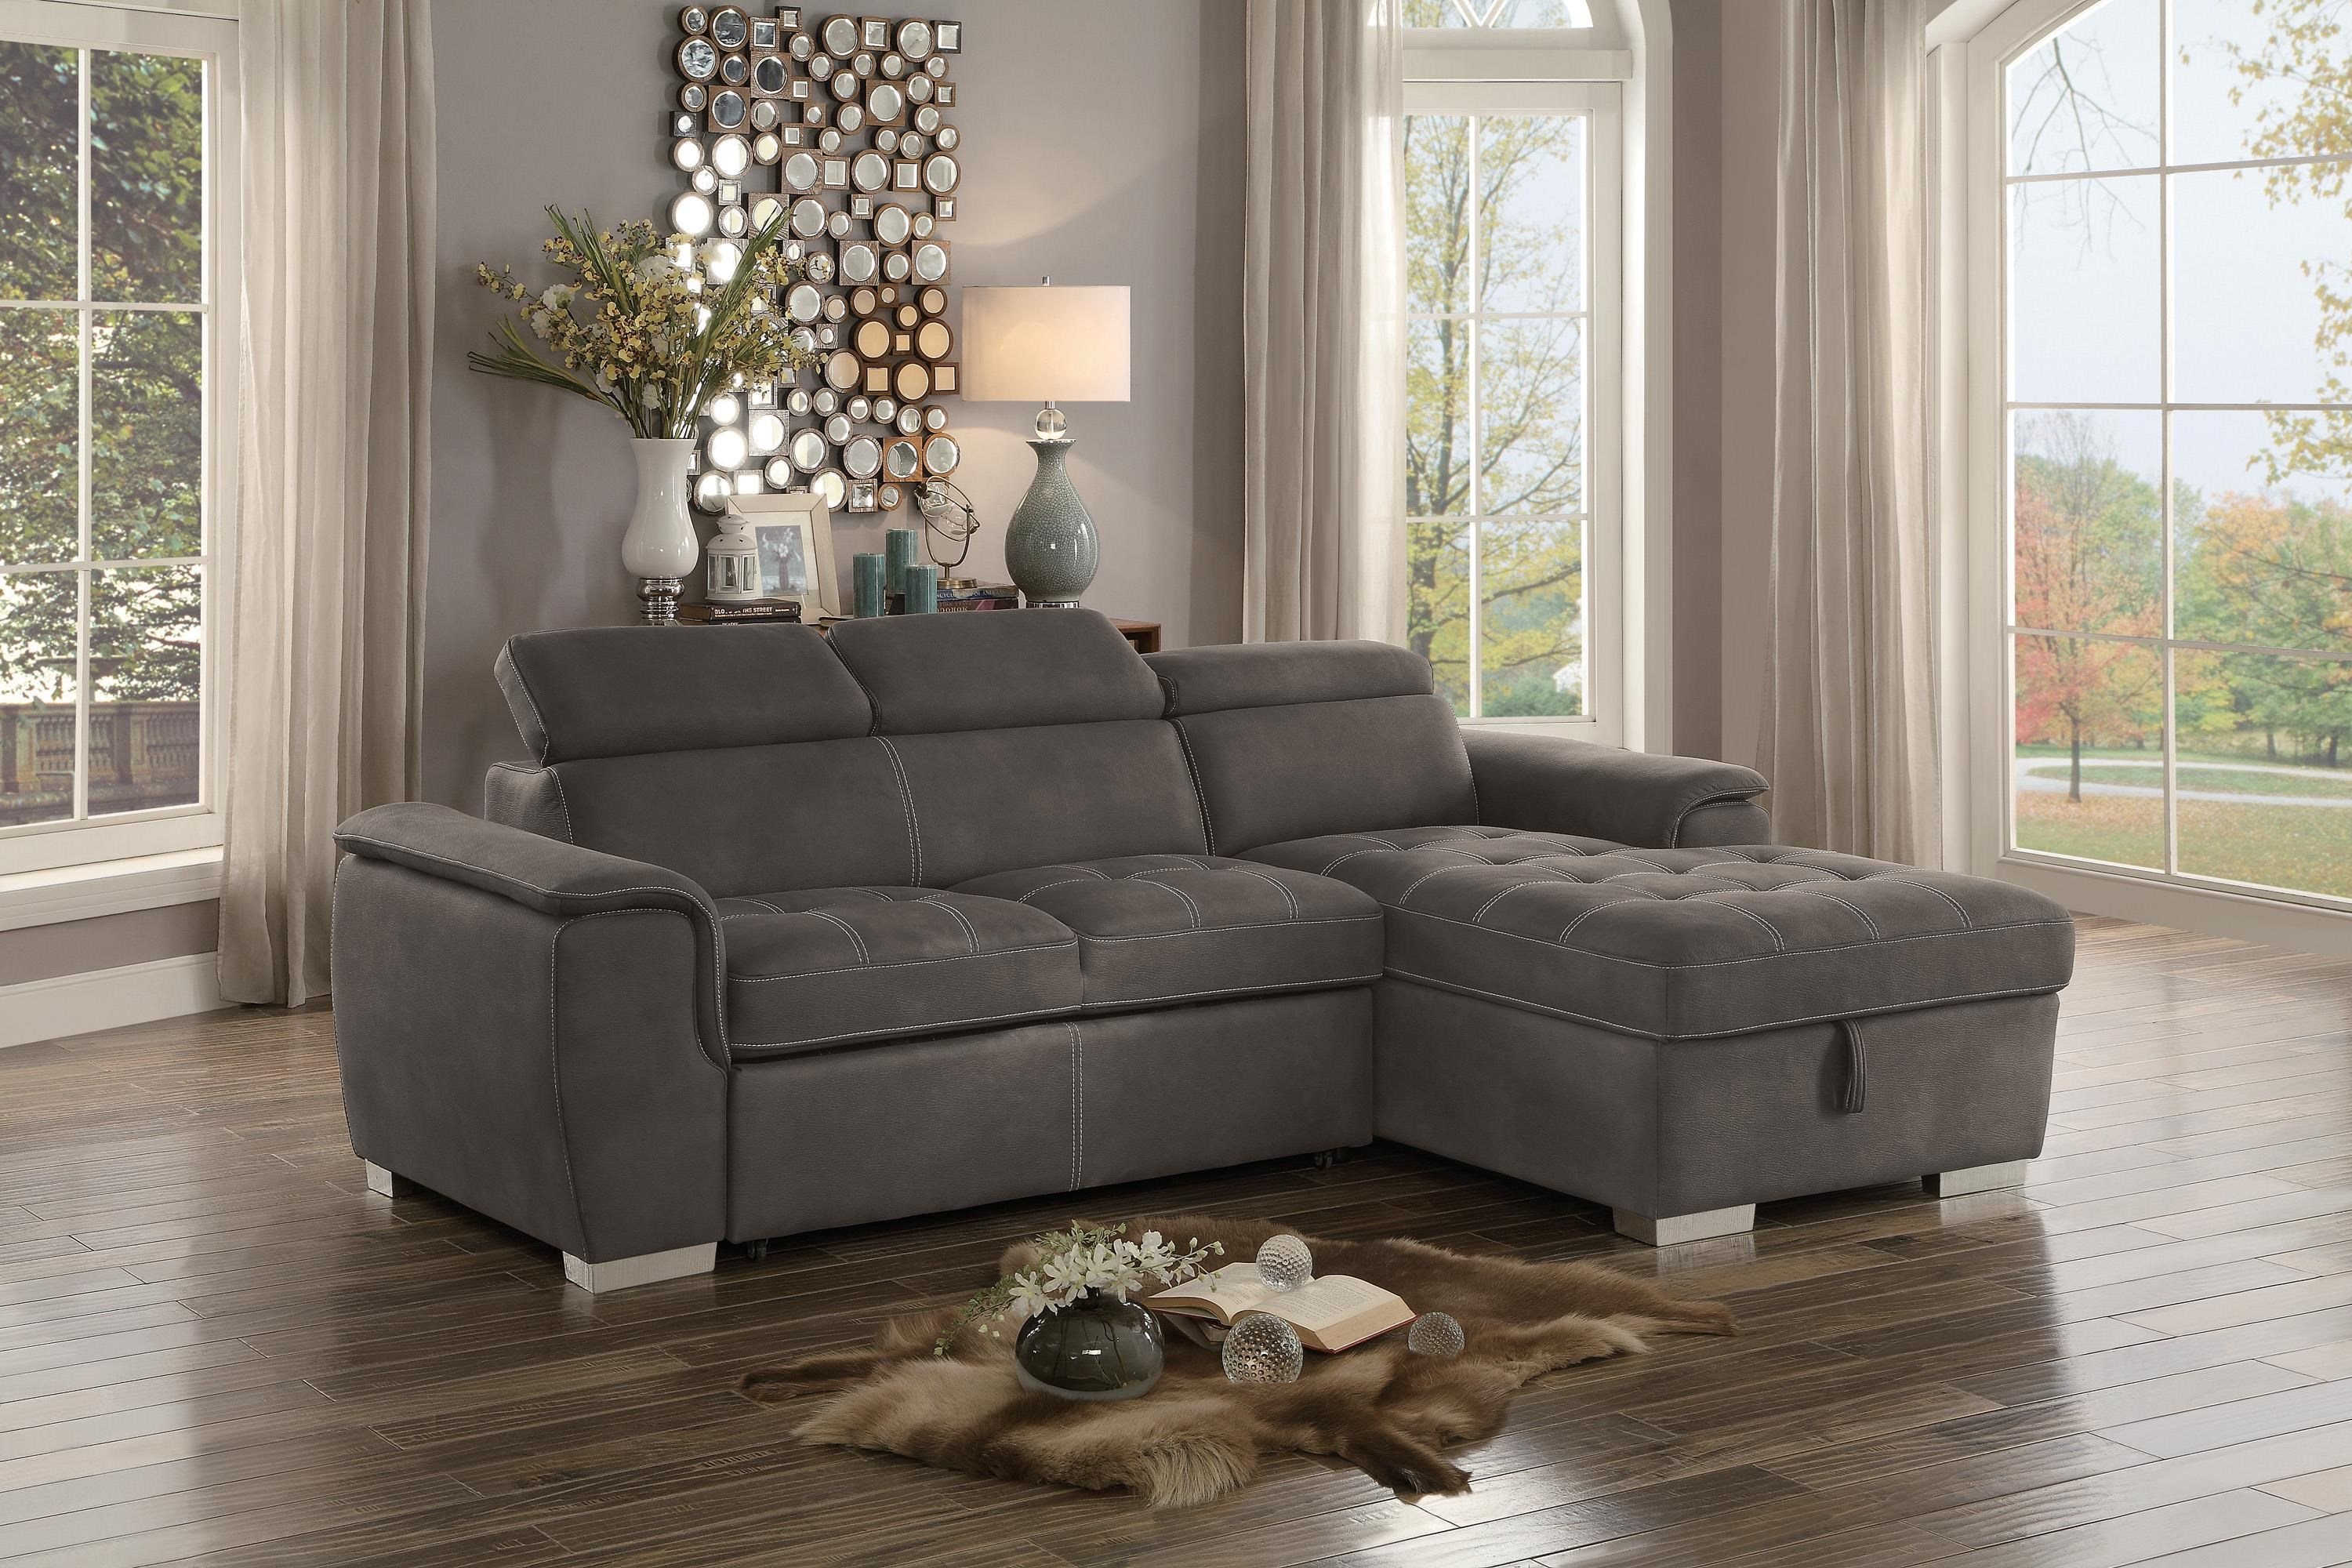 Ferriday 2 Piece Sofa Bed SectionalW/Storage by Homelegance at Darvin Furniture